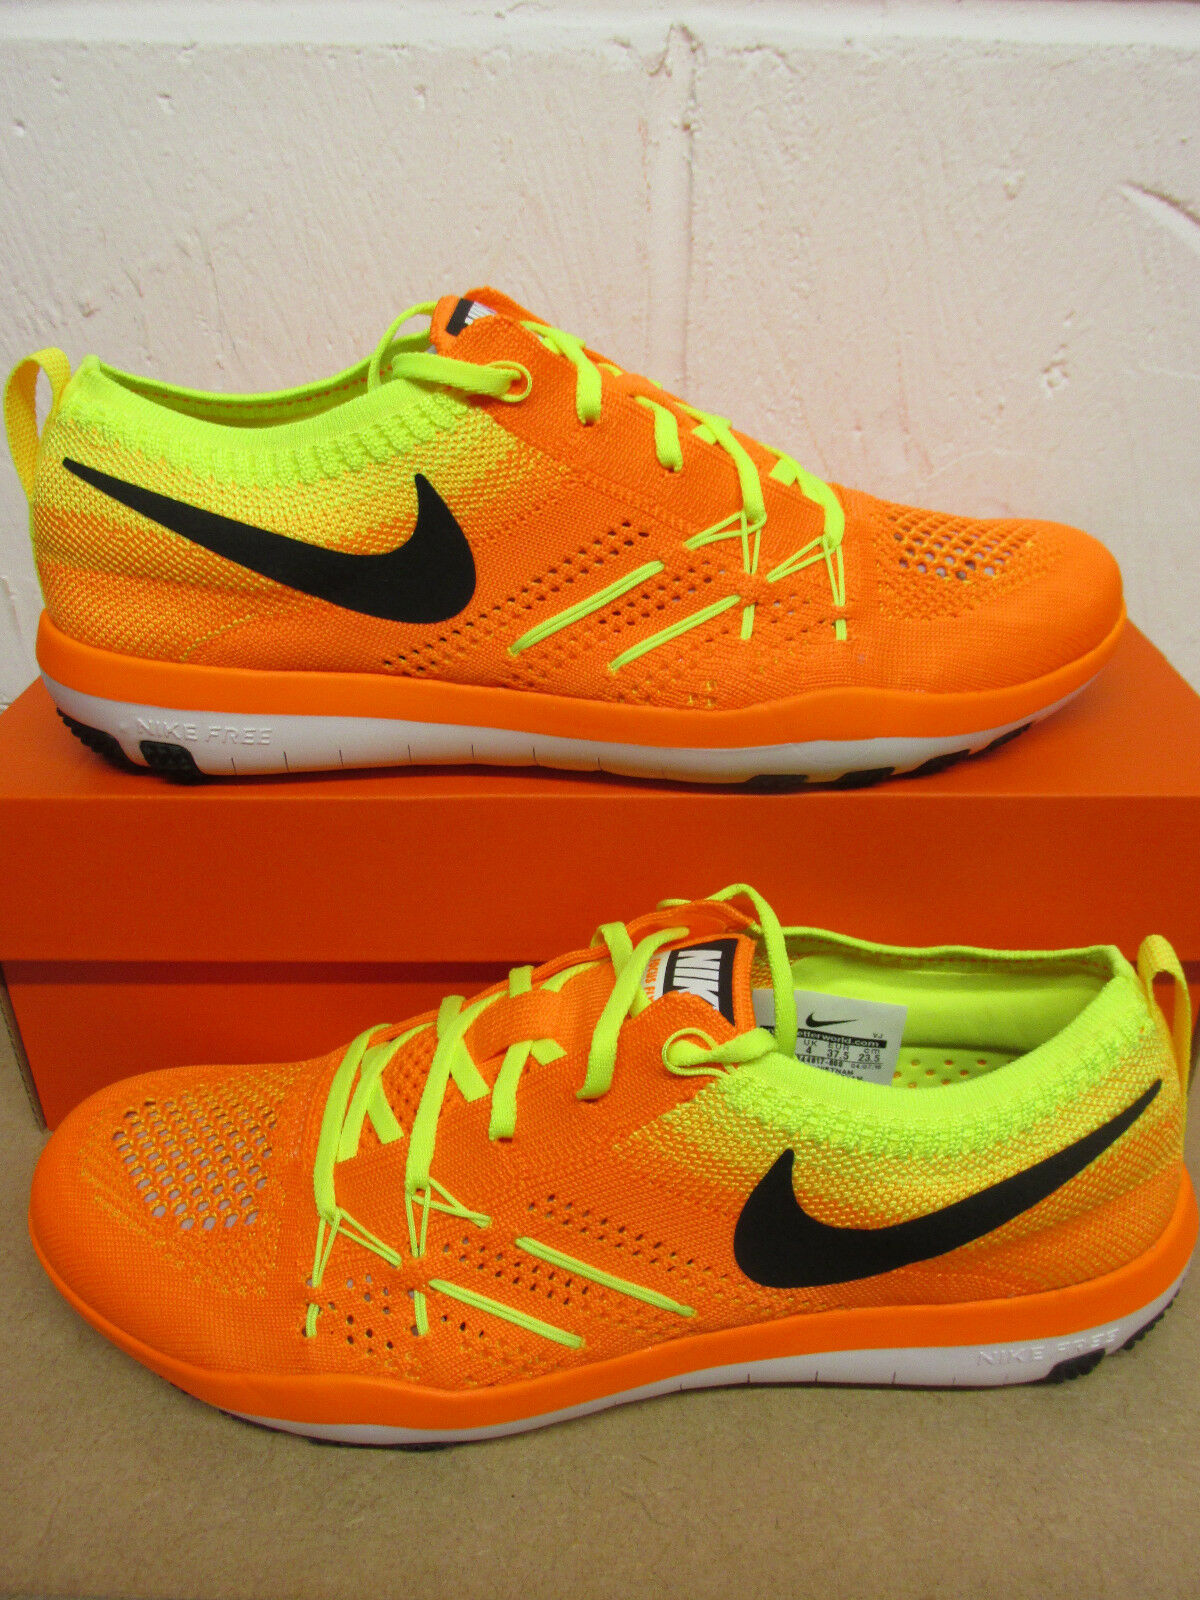 Zapatos promocionales para hombres y mujeres Nike Womens Free TR Focus Flyknit Running Trainers 844817 800 Sneakers Shoes